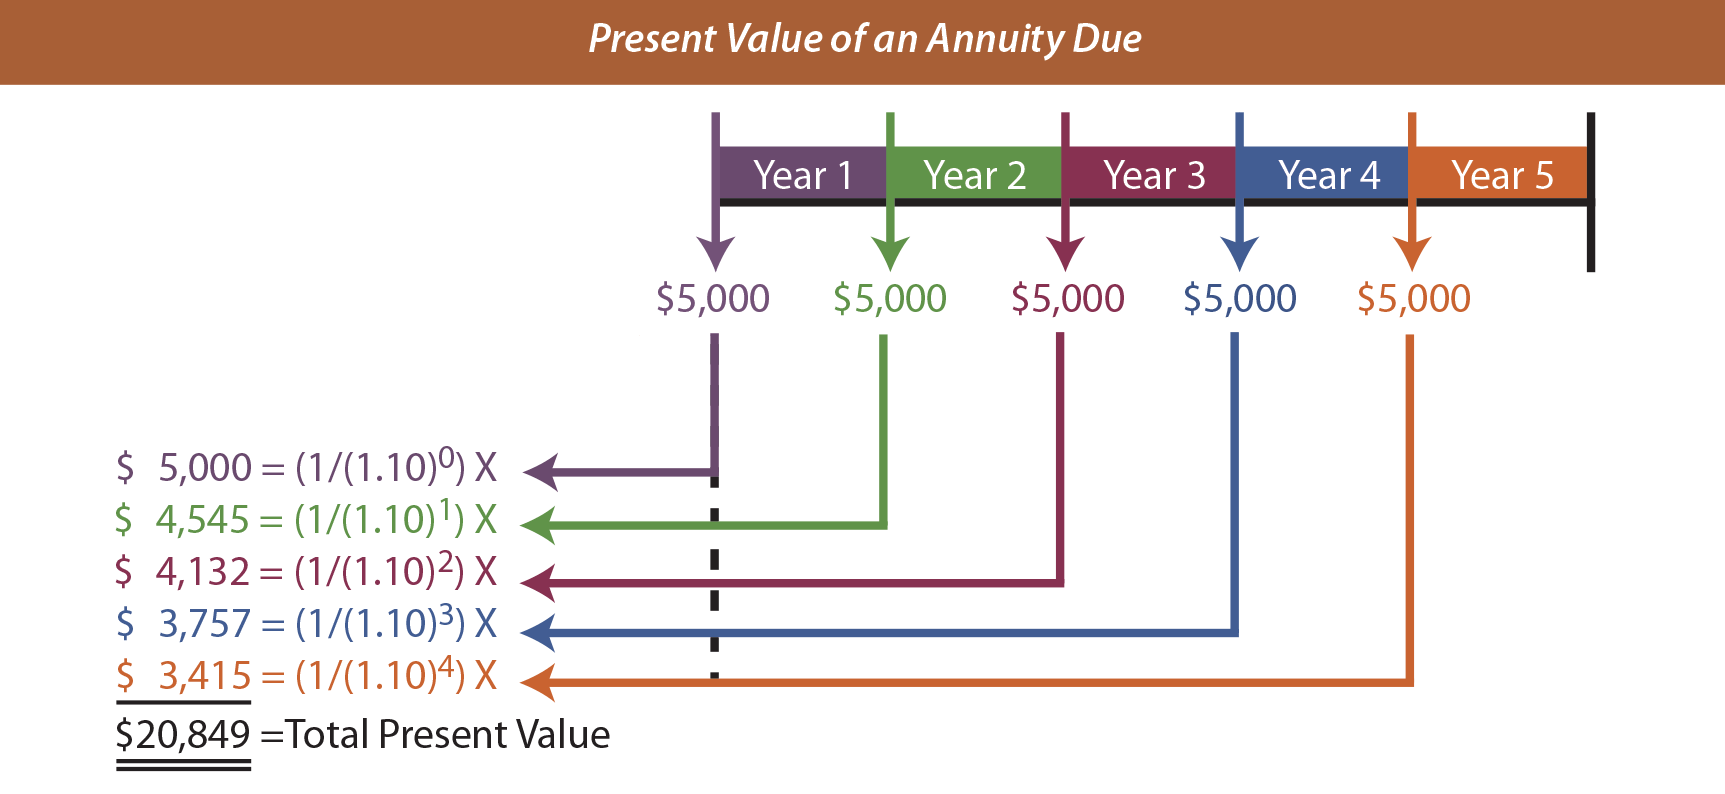 Present Value Of Annuity Due Table